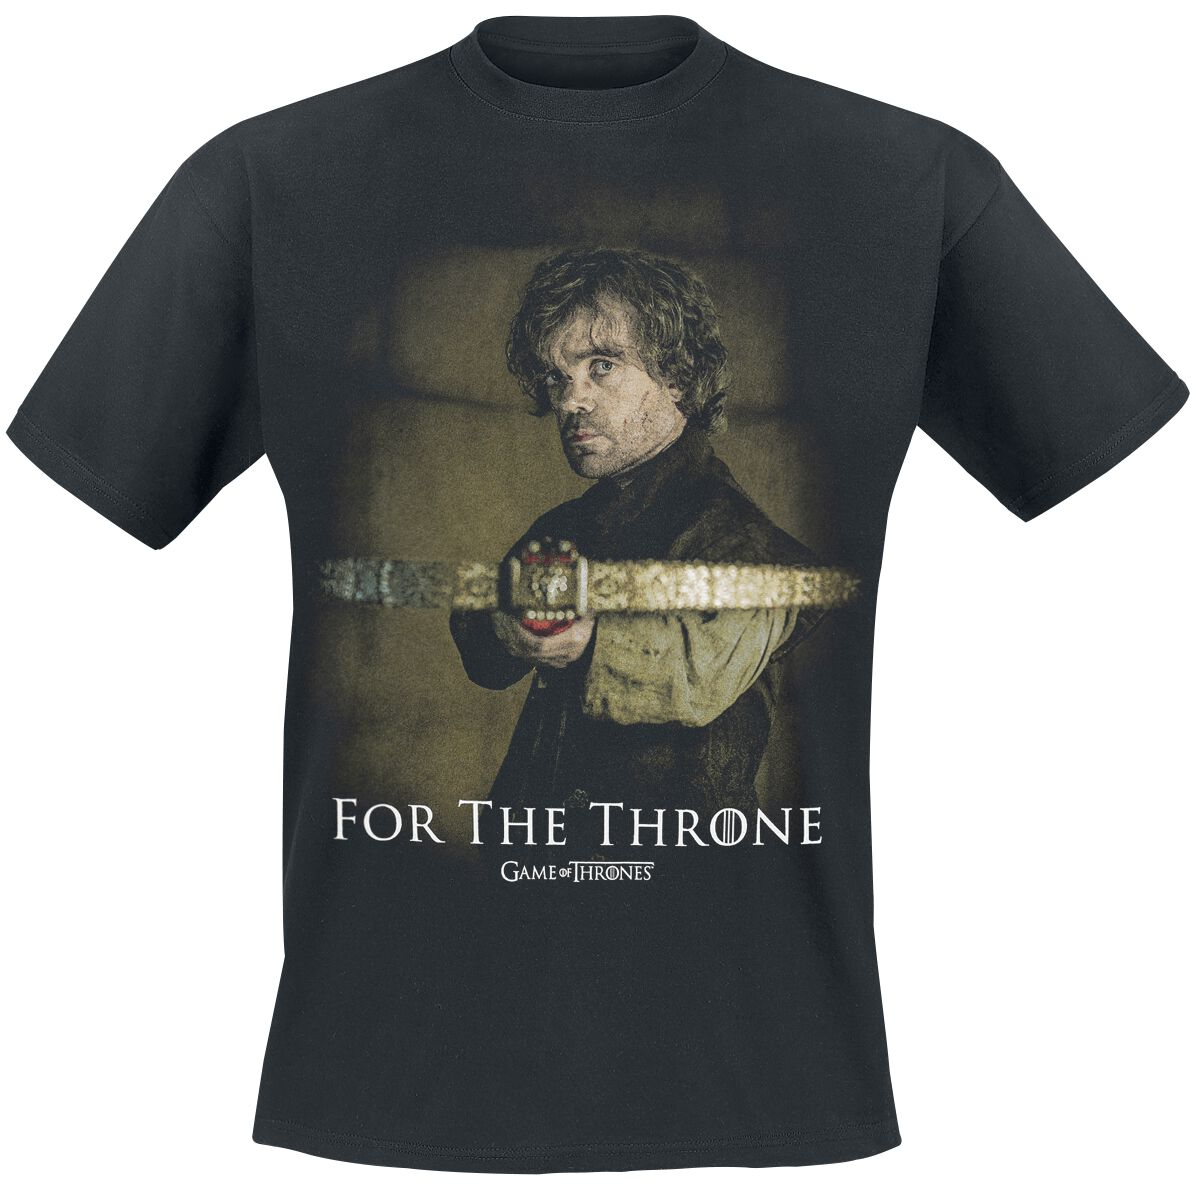 Game Of Thrones For The Throne T-Shirt schwarz 136310004